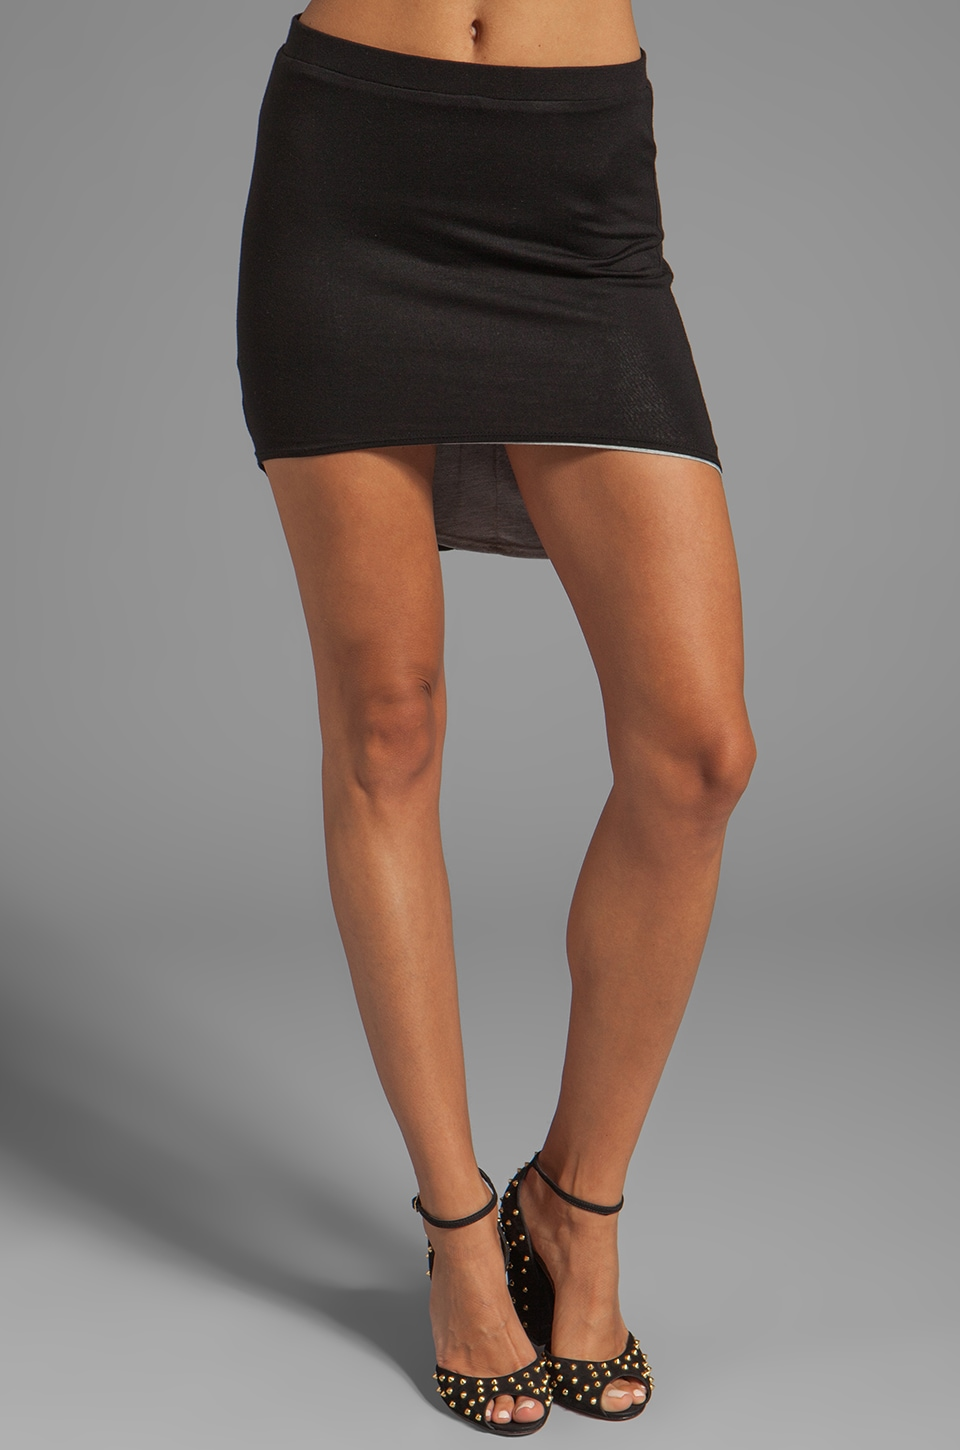 Riller & Fount Reversible High-Low Mini Skirt in Black/Heather Grey